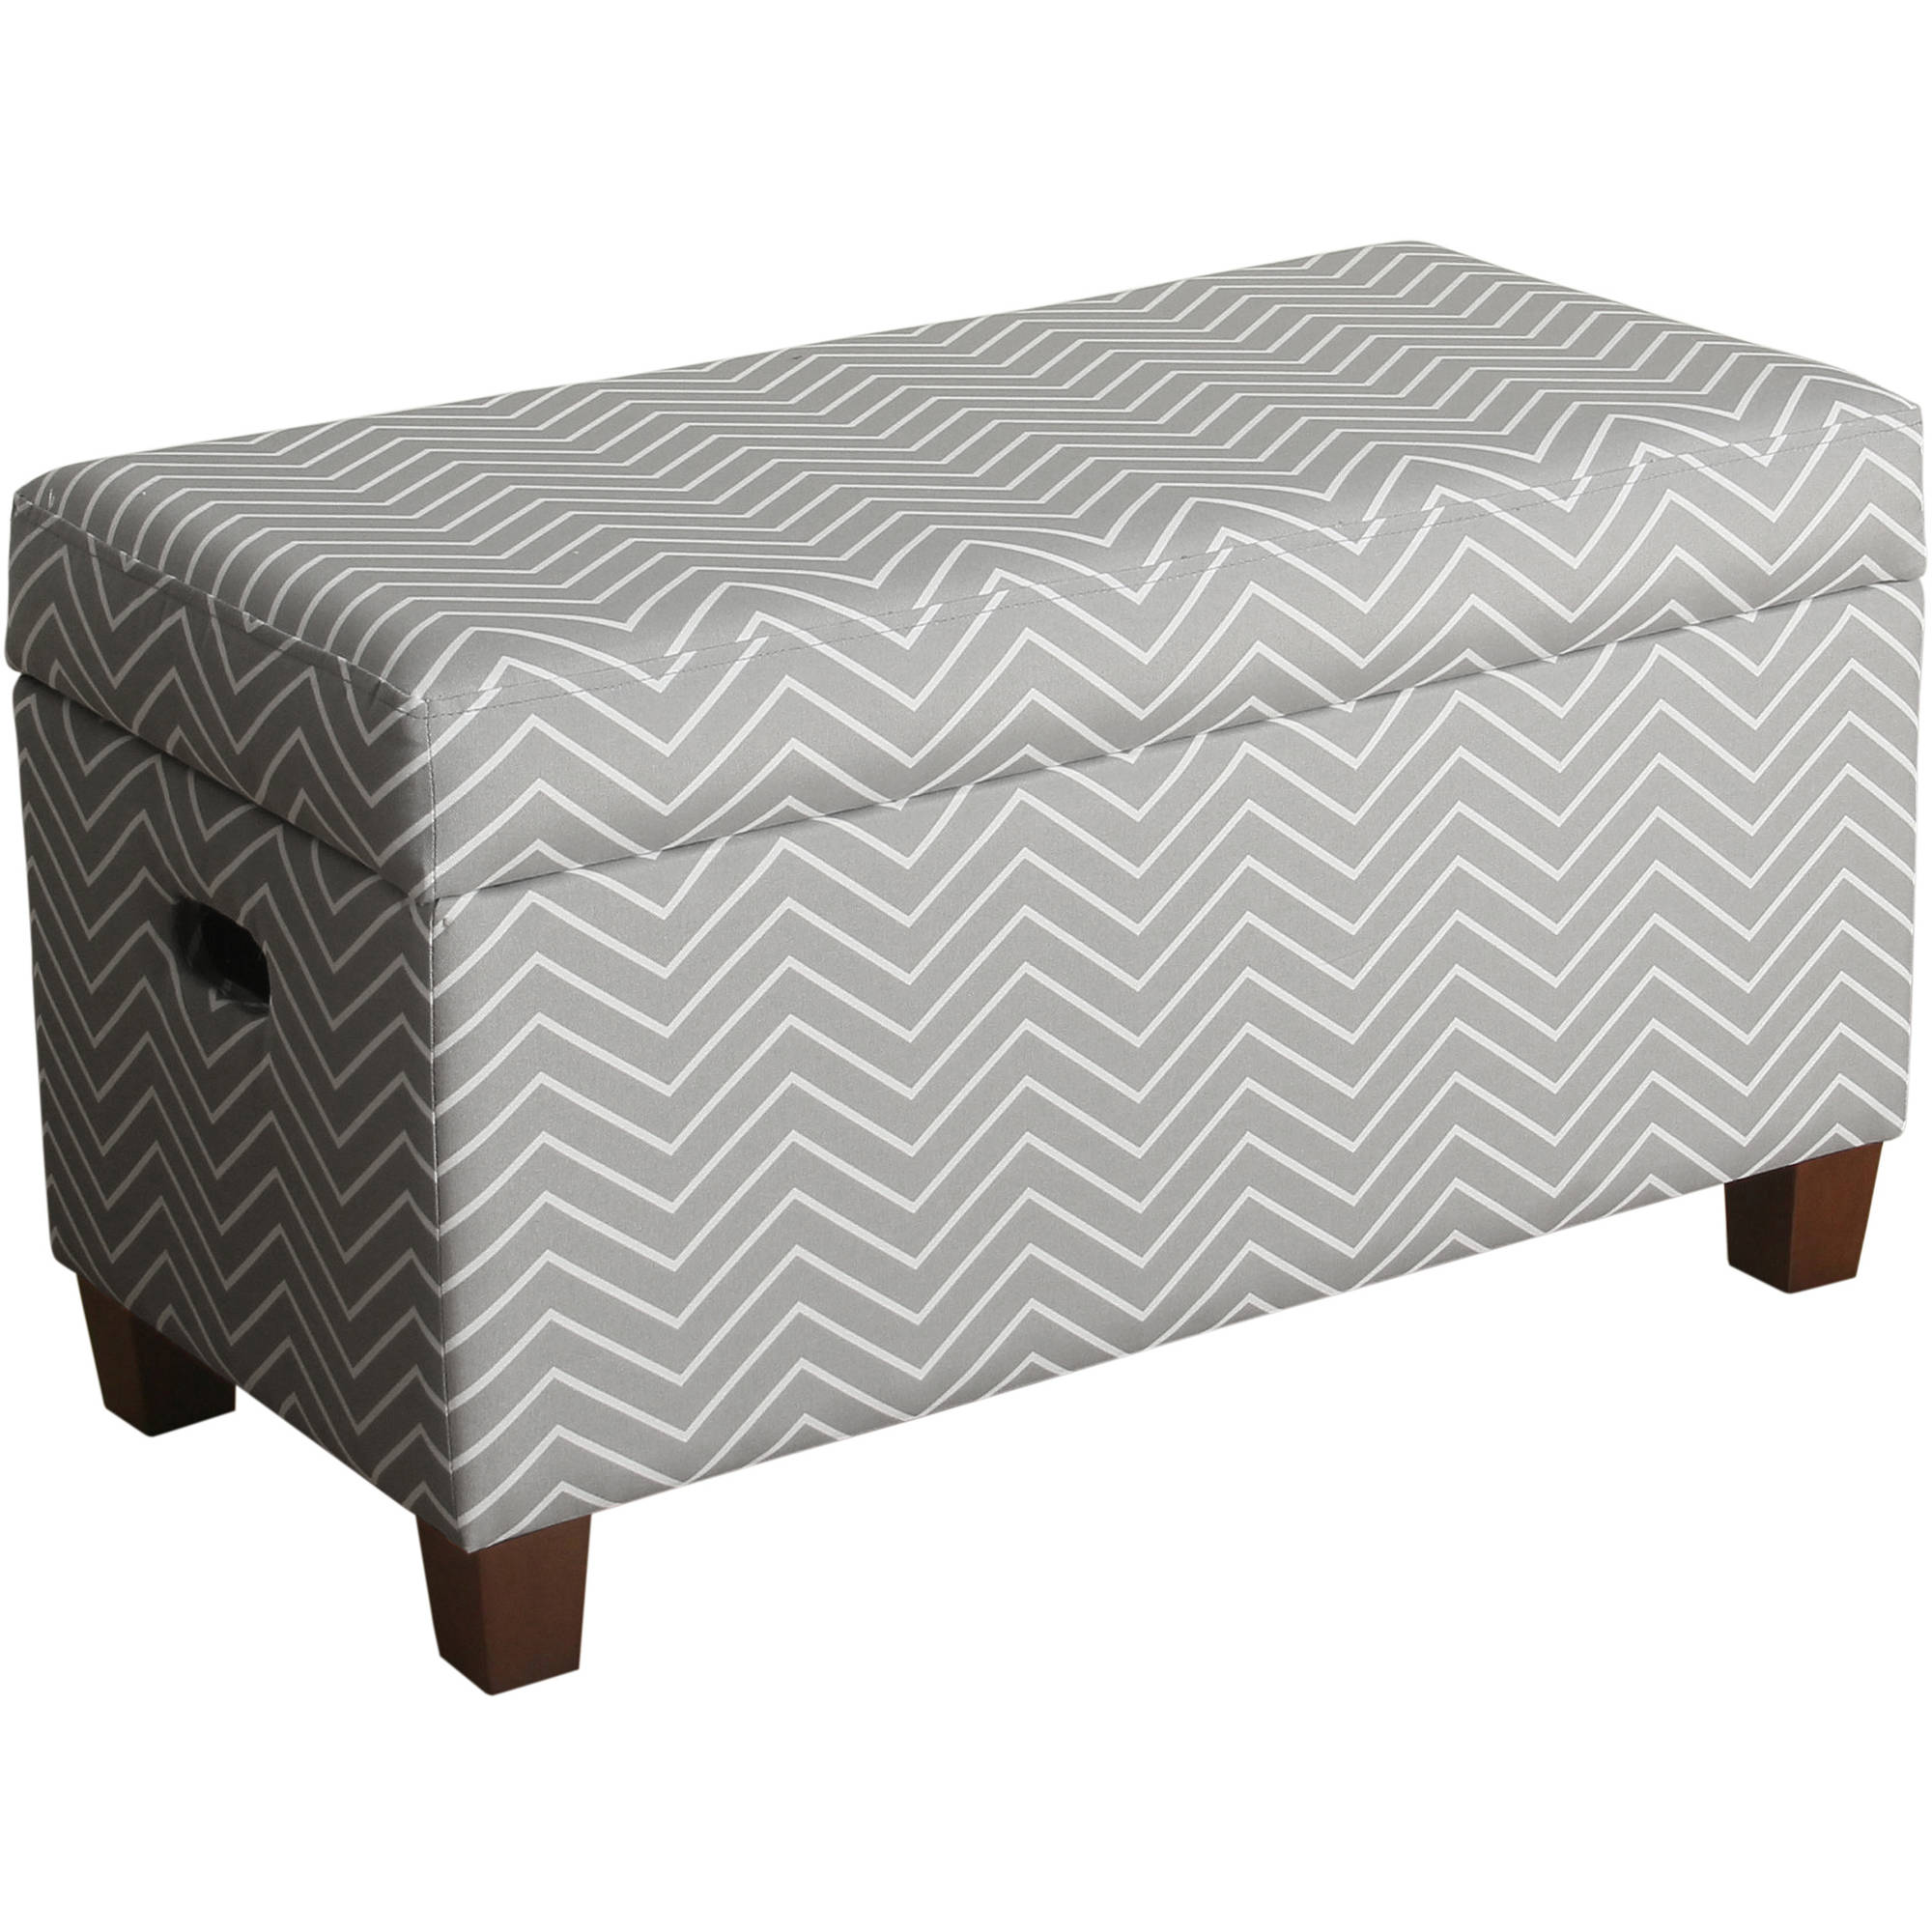 HomePop Juvenile Deluxe Storage Bench, Multiple Colors